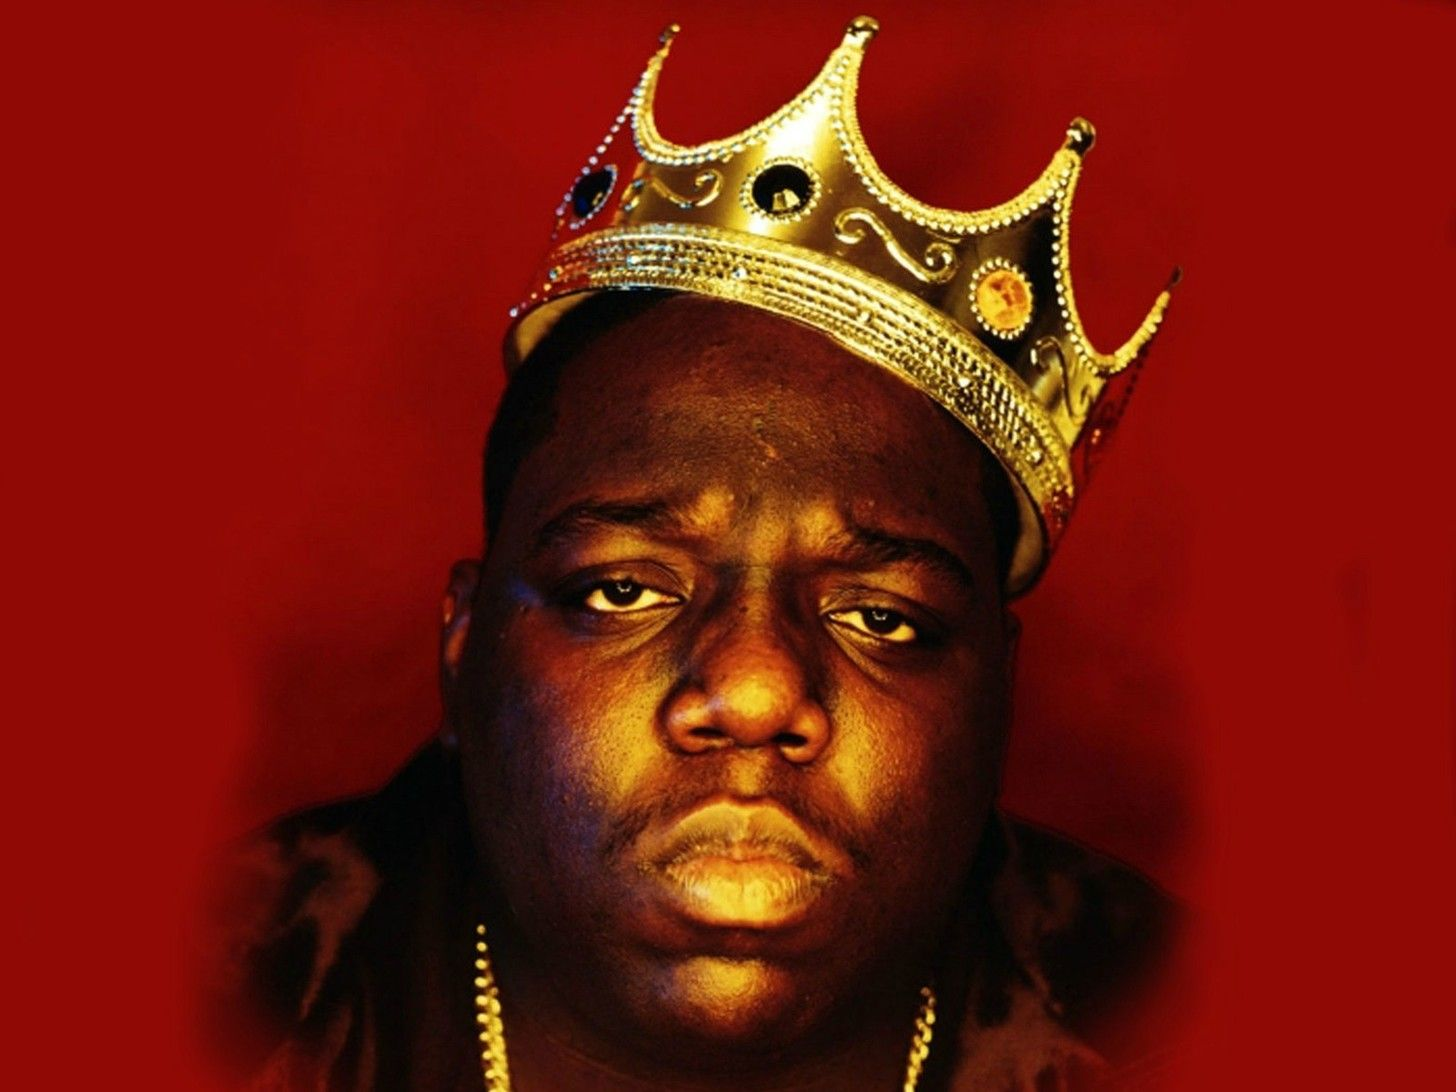 Dump Of 50 Hip Hop Wallpapers I Ve Collected Some From This Sub Album On Imgur Biggie Smalls Music Biggie Smalls Notorious Big